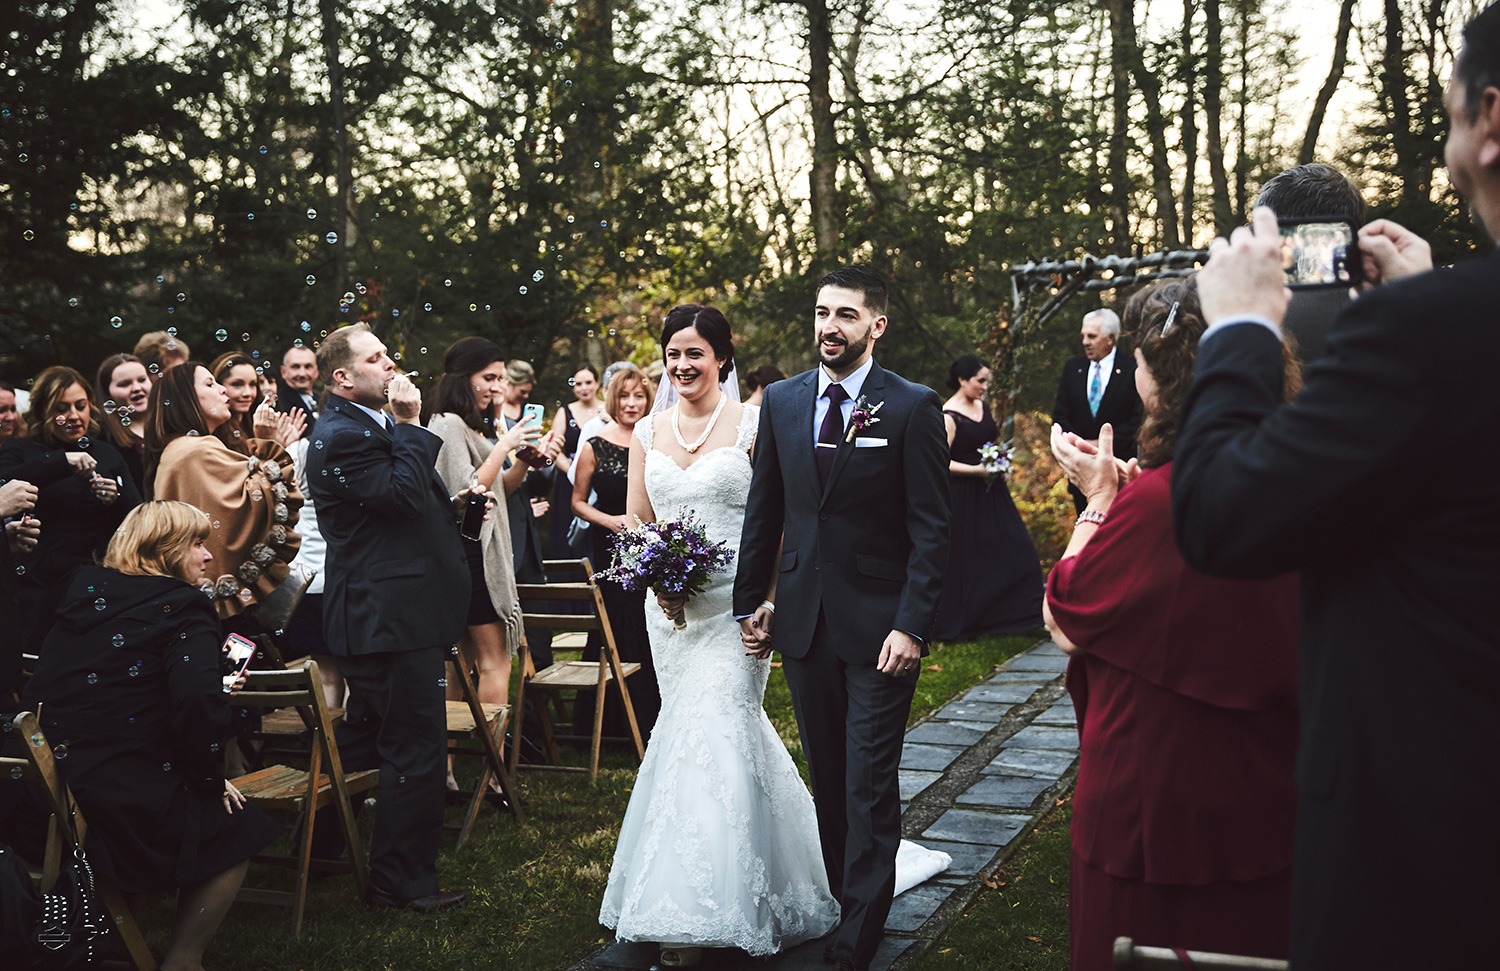 161119_ArrowParkLake&LodgeWedding_By_BriJohnsonWeddings_0120.jpg